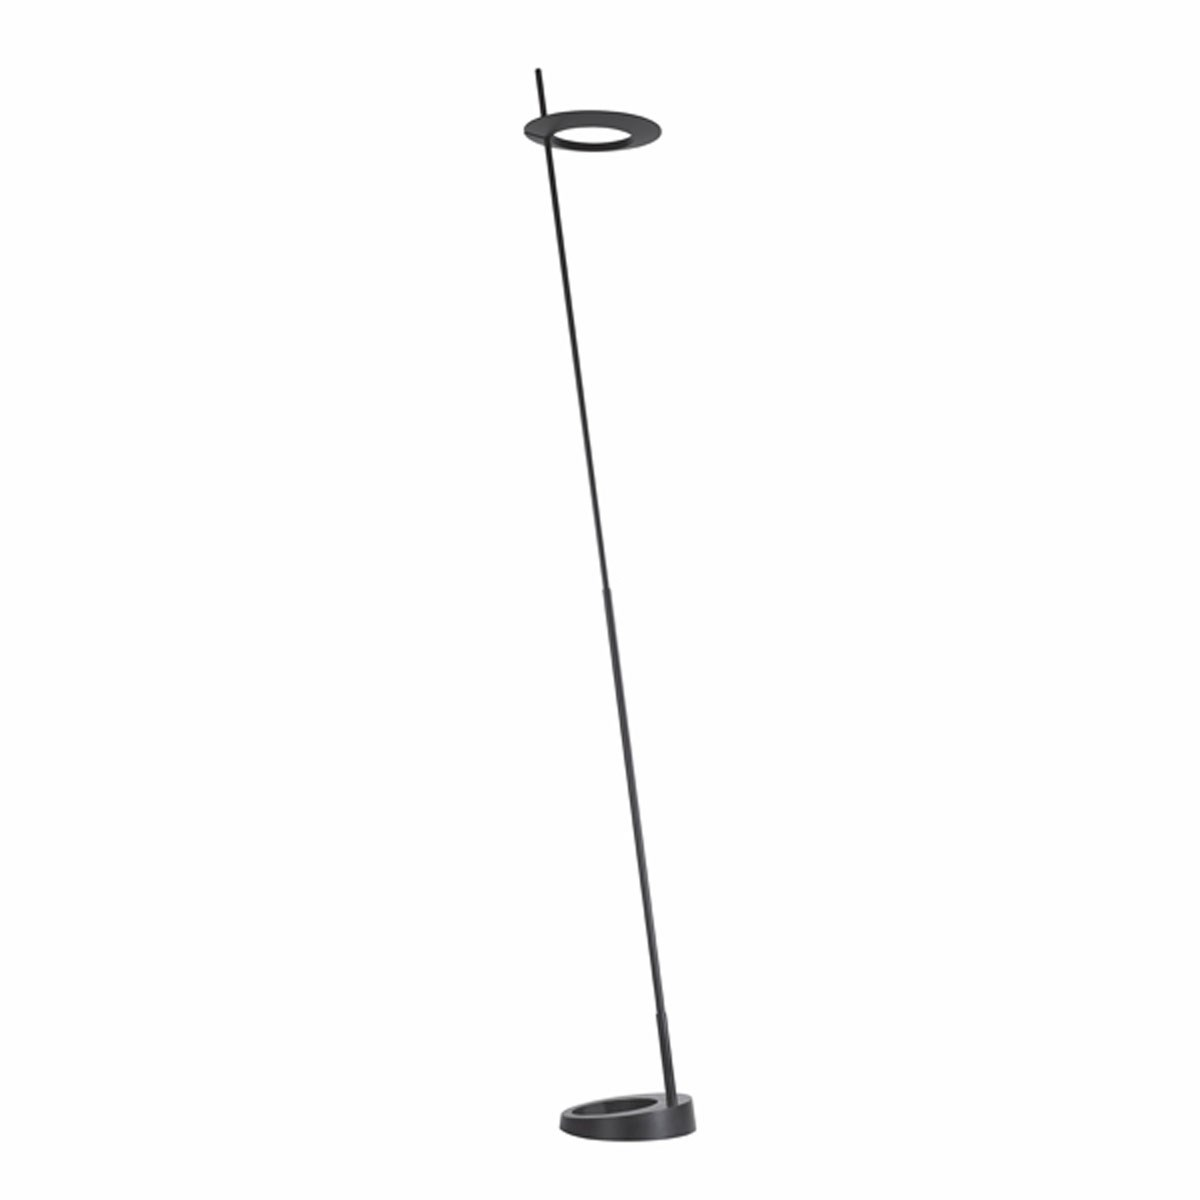 sonneman ringlo™ led torchiere floor lamp  neenas lighting - ringlo™ led torchiere